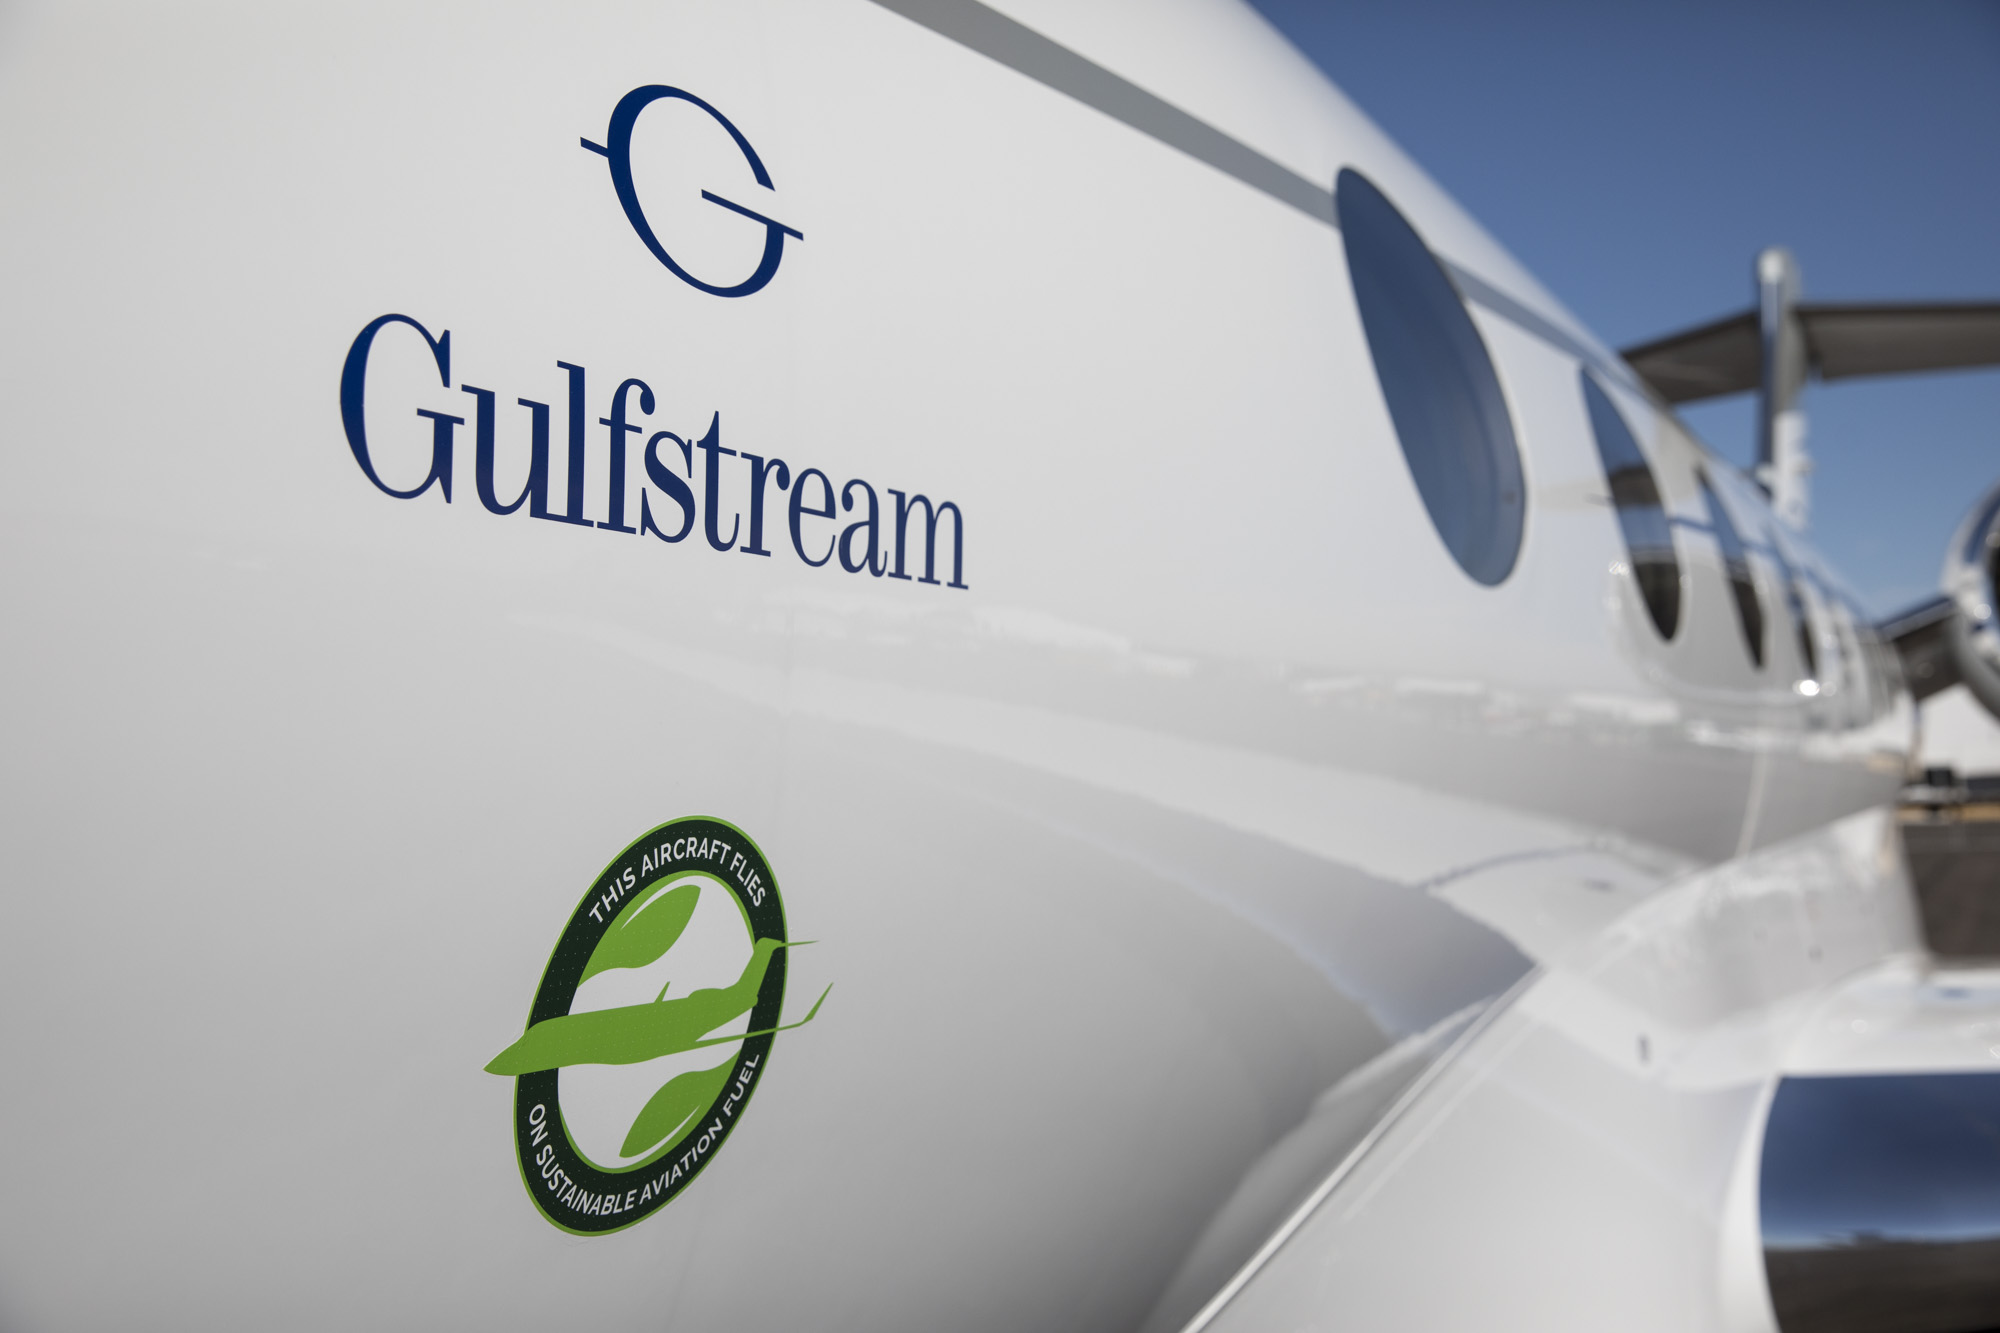 Credit: Gulfstream Aerospace